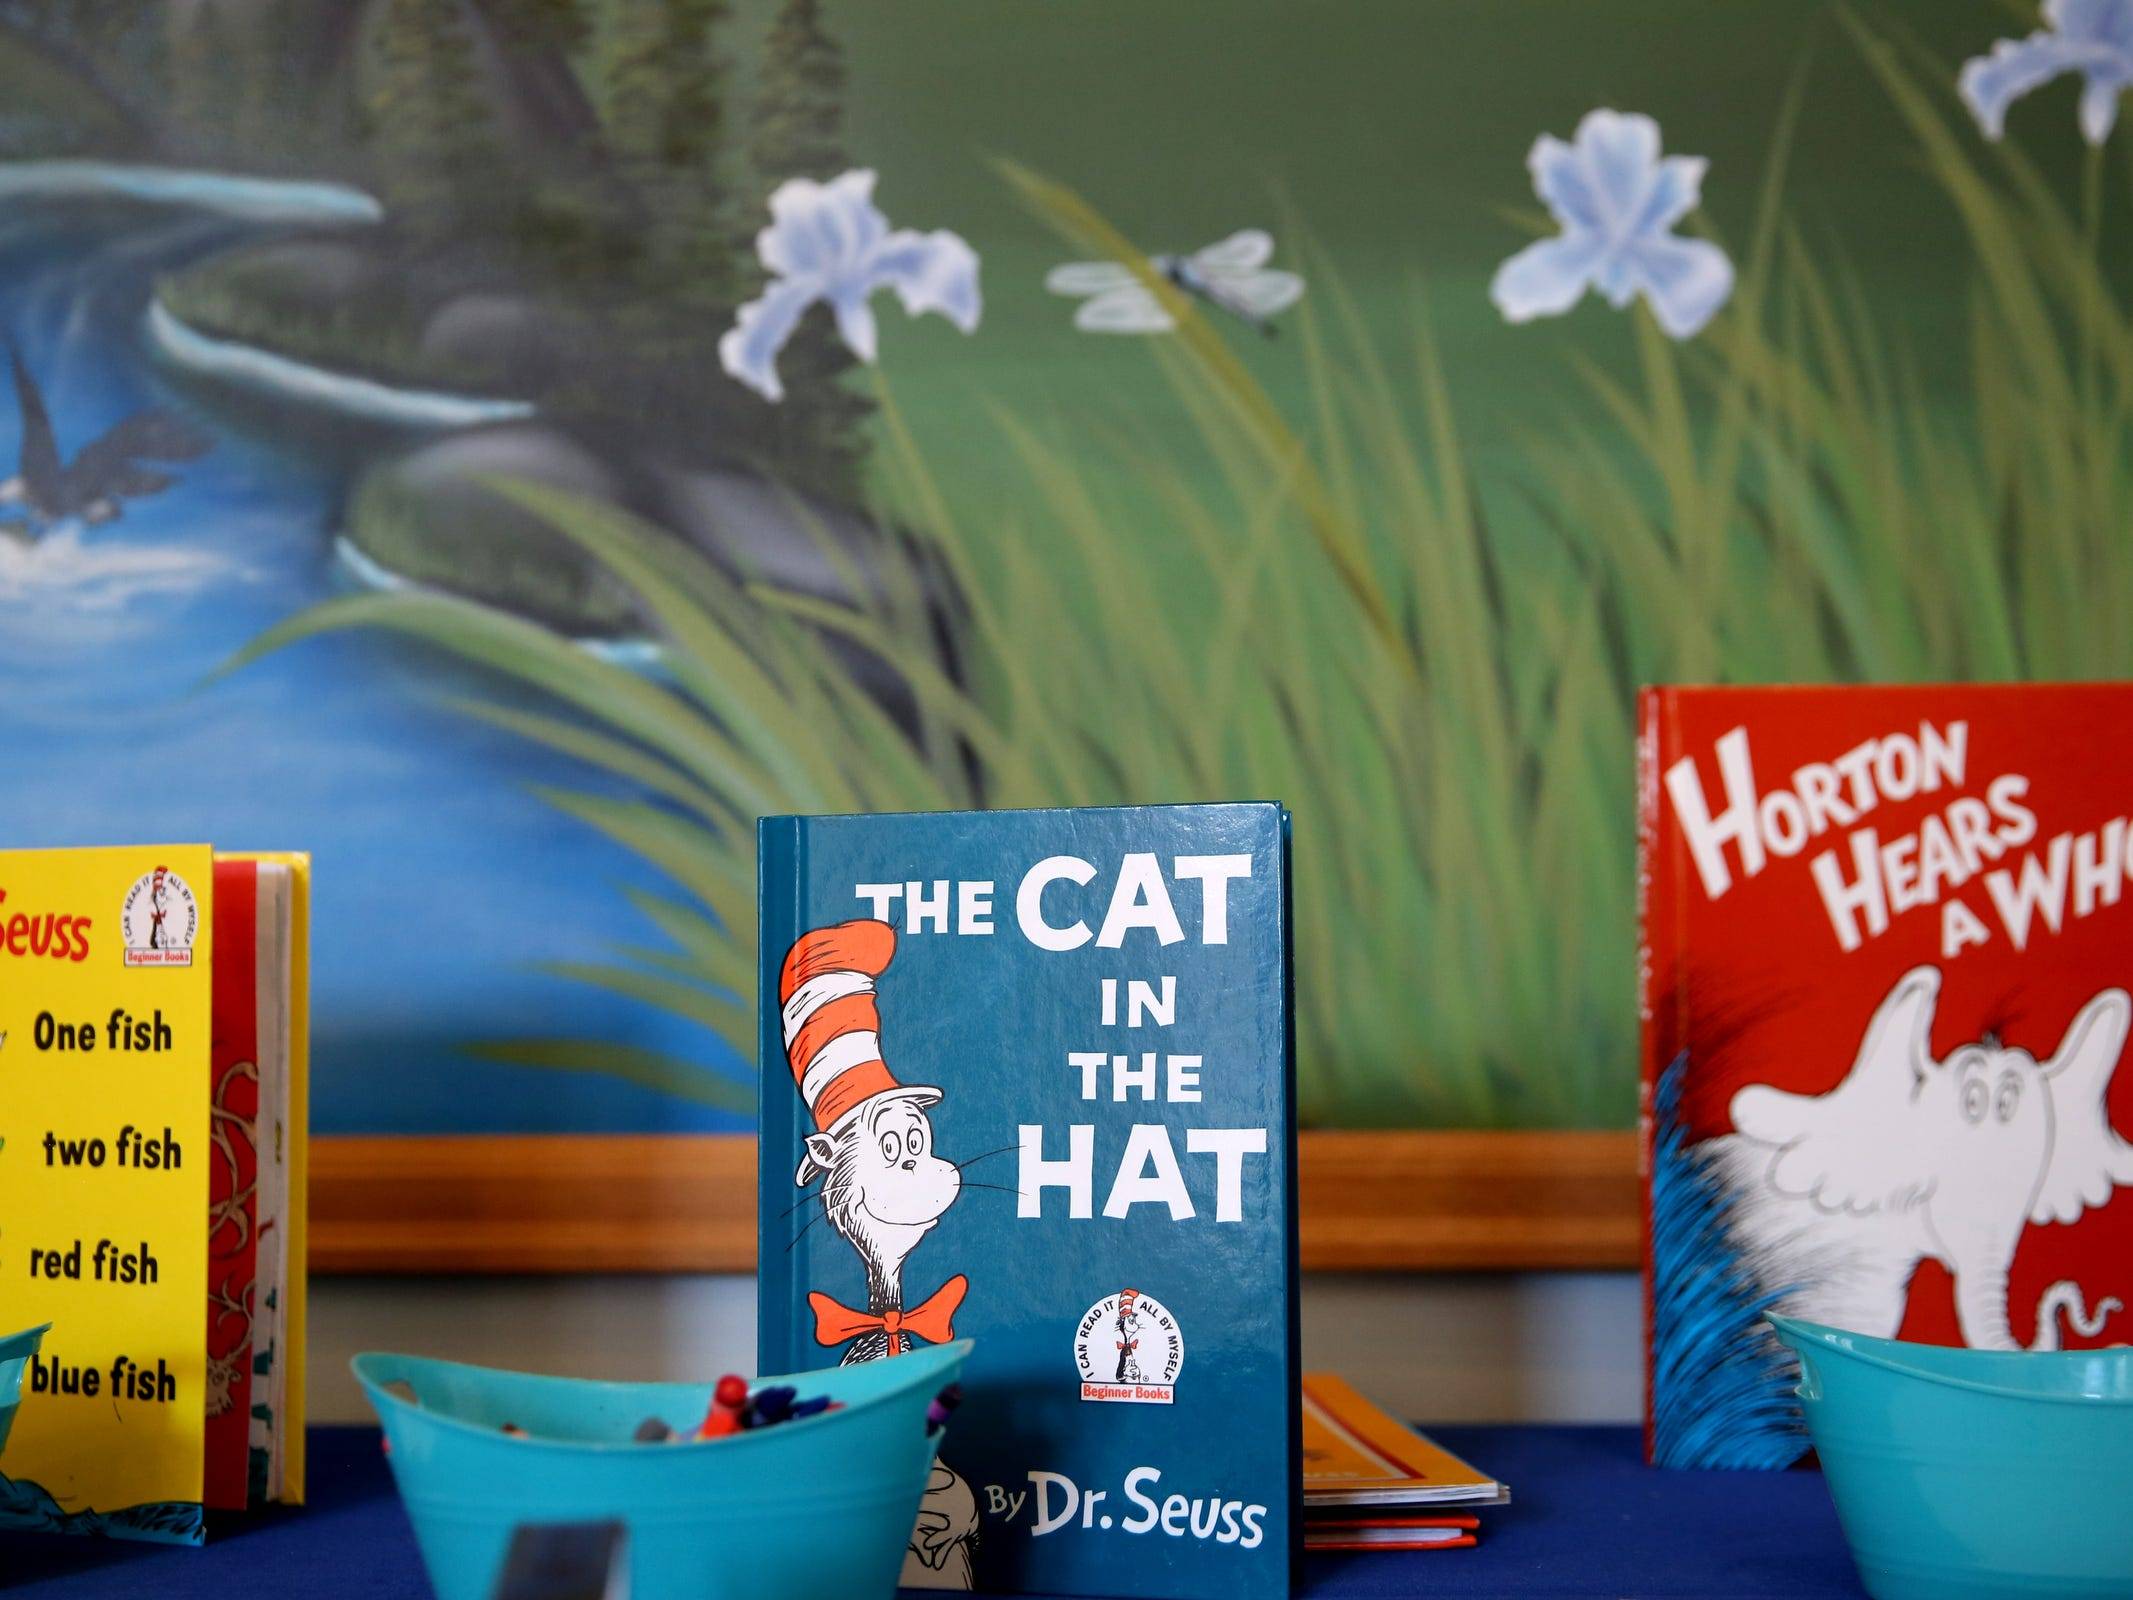 Books are set up as part of a National Read Across America Day activity in honor of Dr. Seuss' birthday at Gilbert House Children's Museum in Salem  on Friday, March 1, 2019.